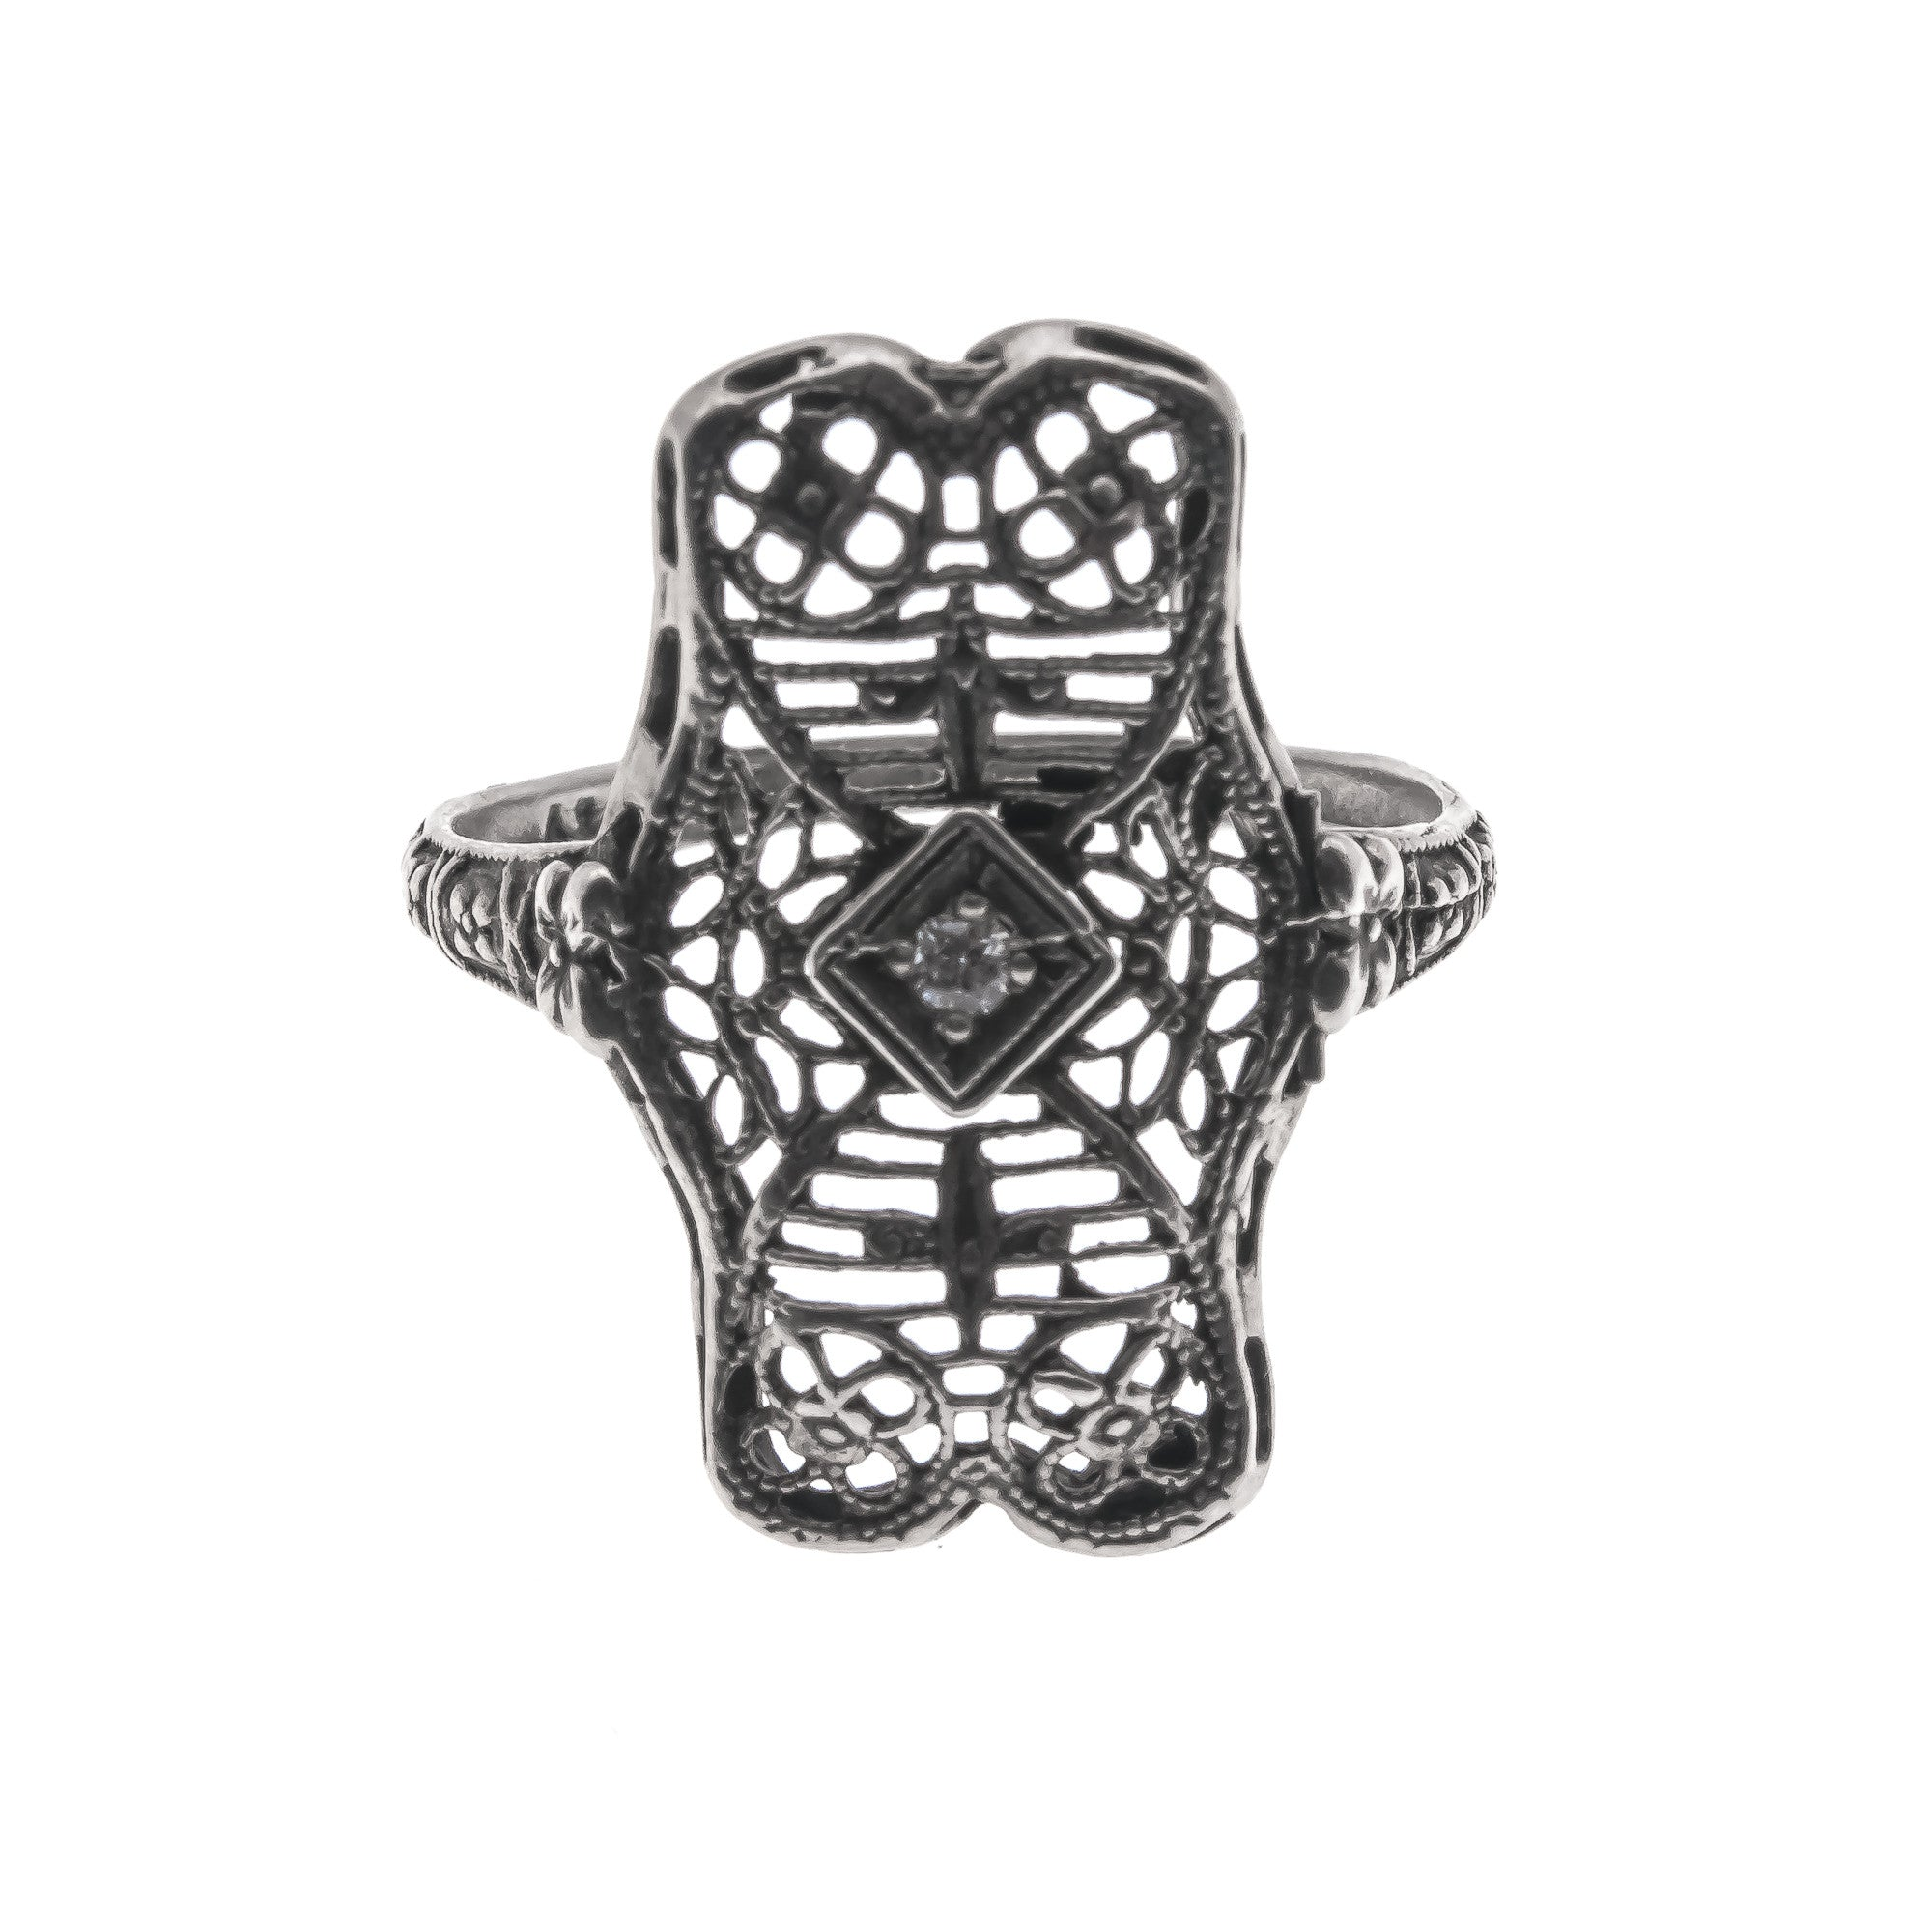 Lace - Edwardian 14K Diamond Filigree Ring